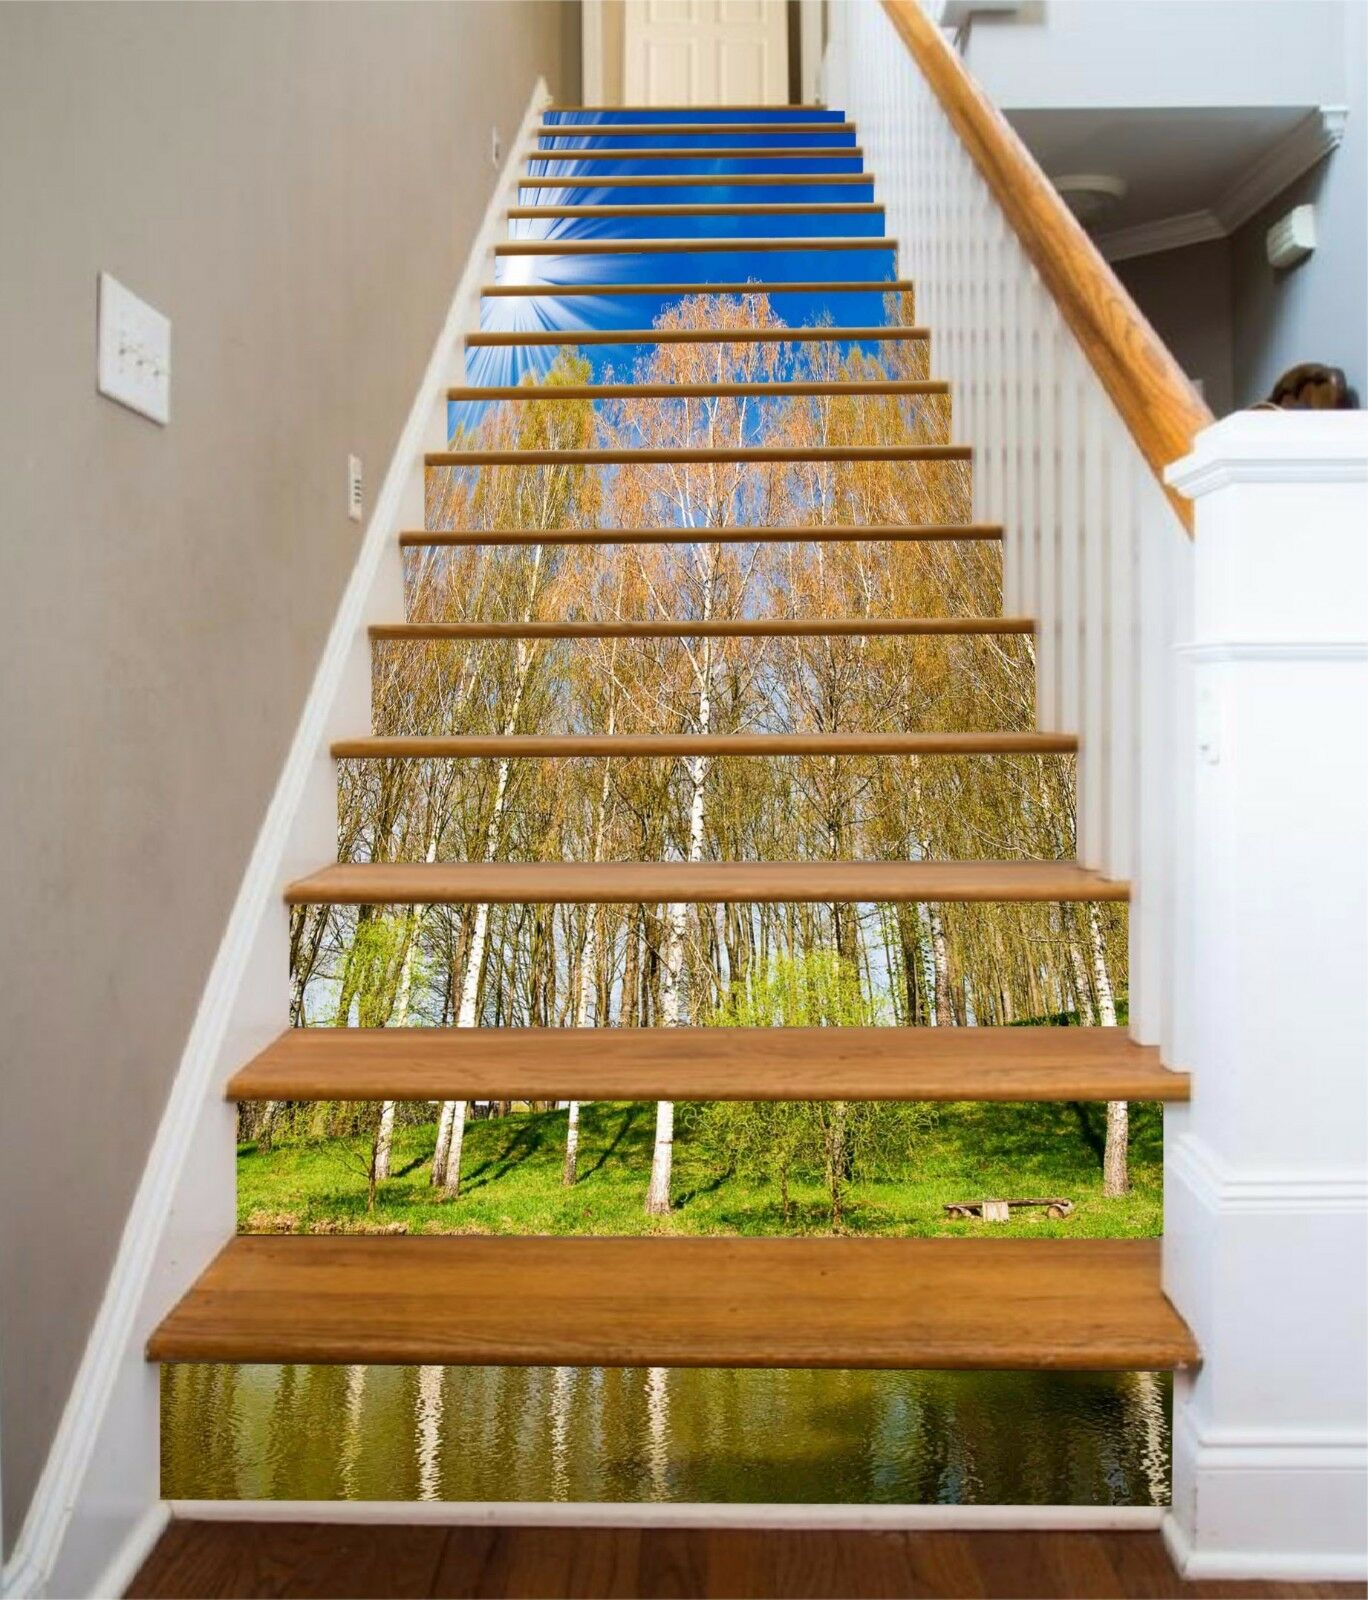 3D Sky forest Stair Risers Decoration Photo Mural Vinyl Decal Wallpaper AU